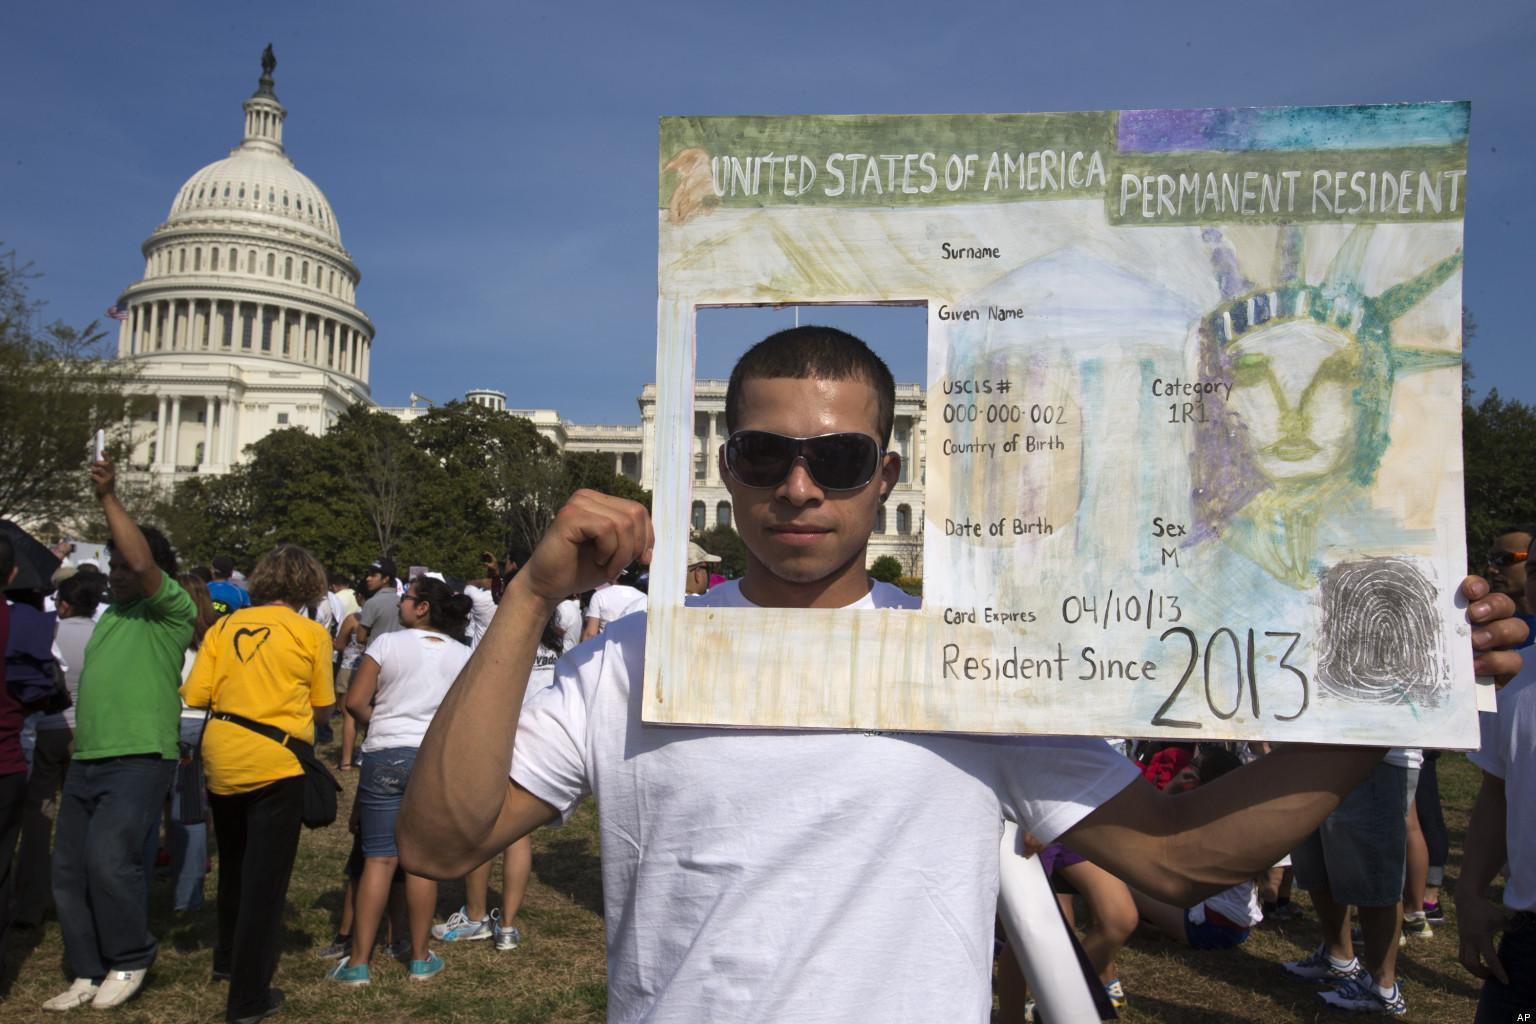 undocumented (illegal) citizens that contribute to america? - the